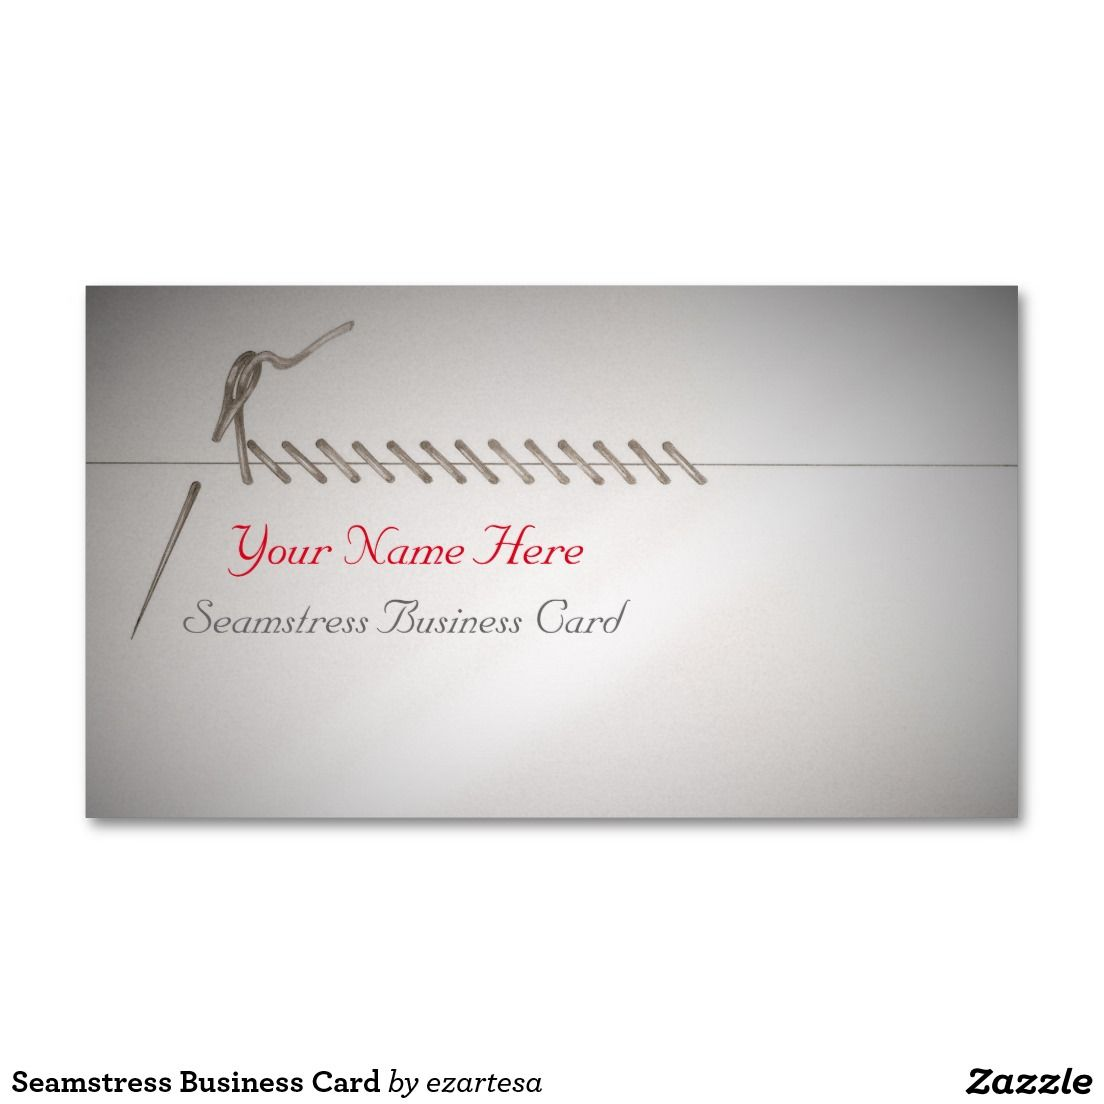 Seamstress Business Card | DESIGN | Pinterest | Business cards and ...